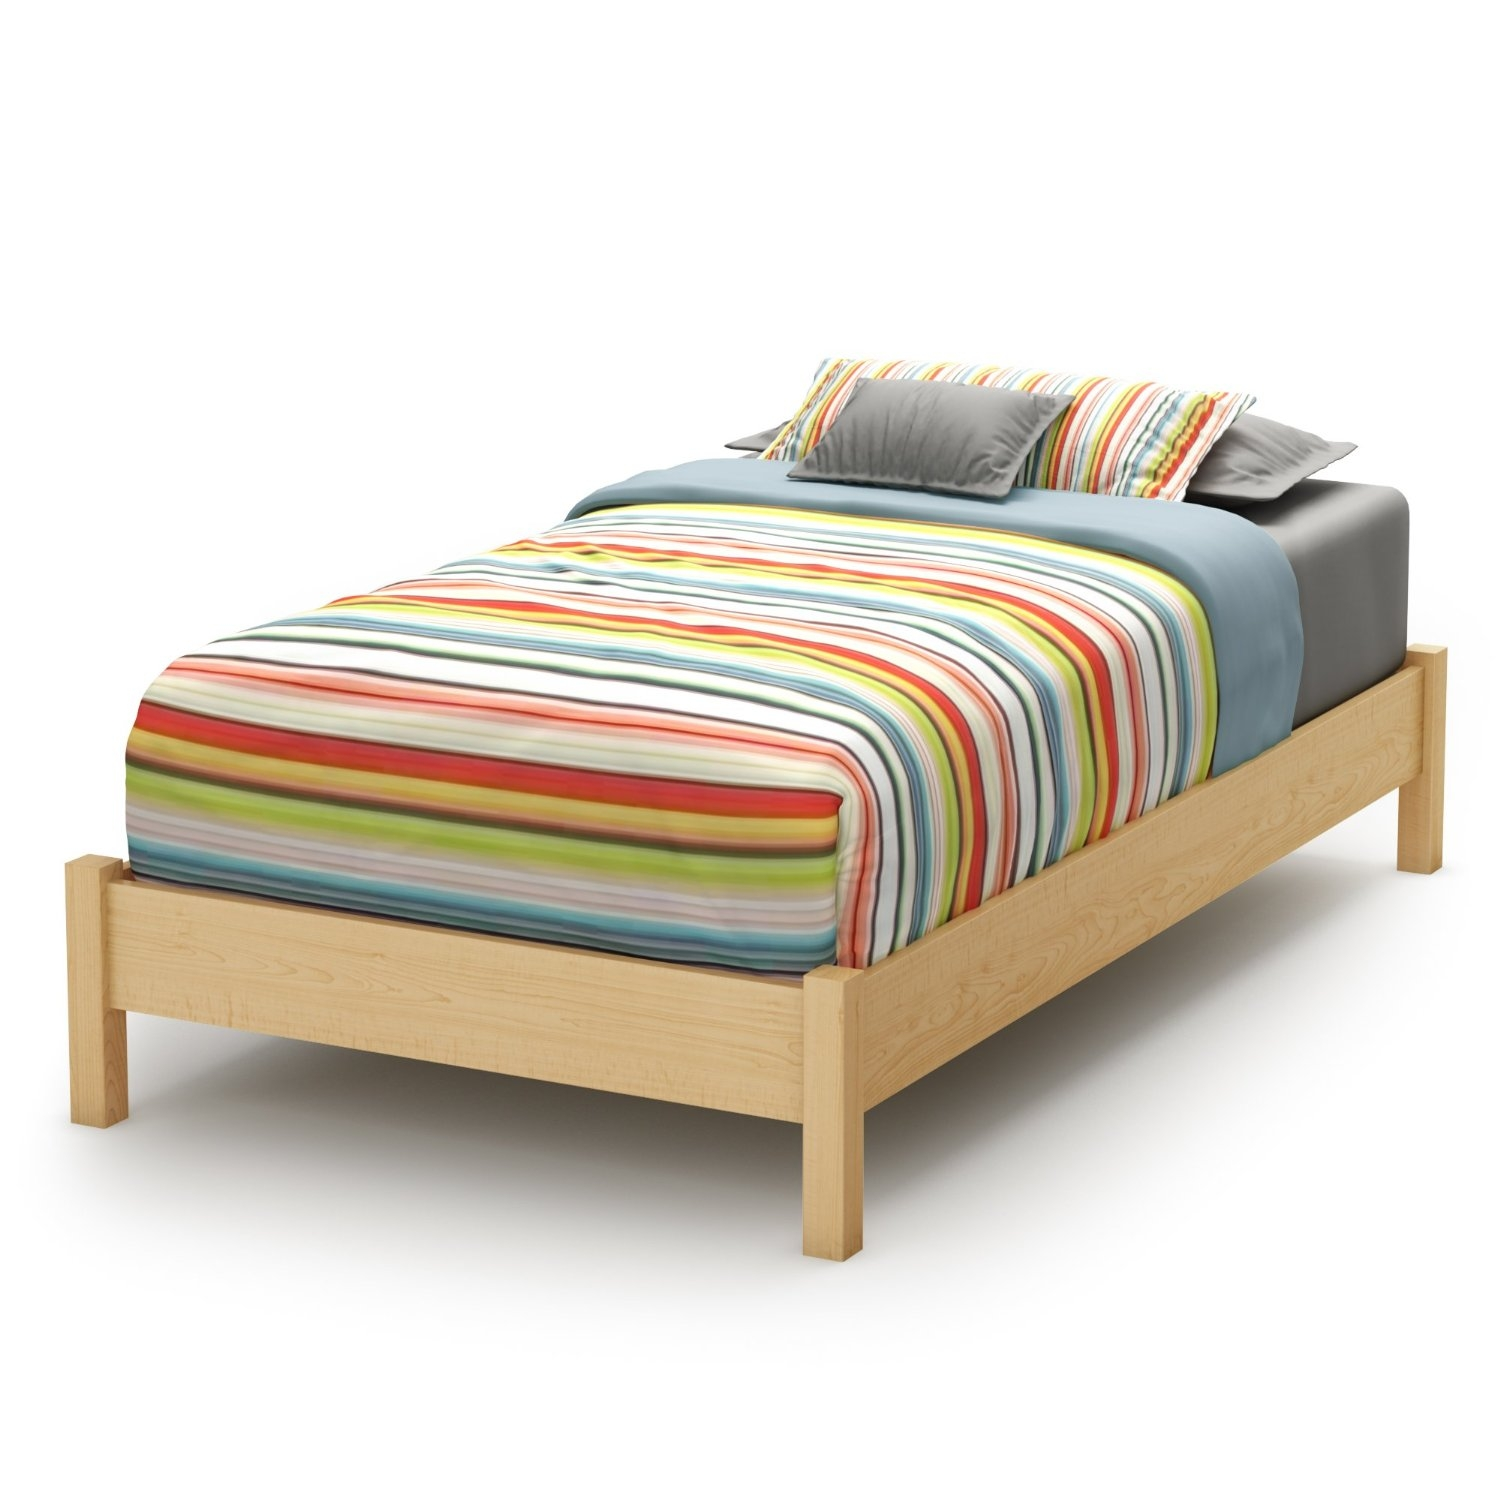 Twin Size Platform Bed Frame In Natural Wood Finish Fastfurnishings Com